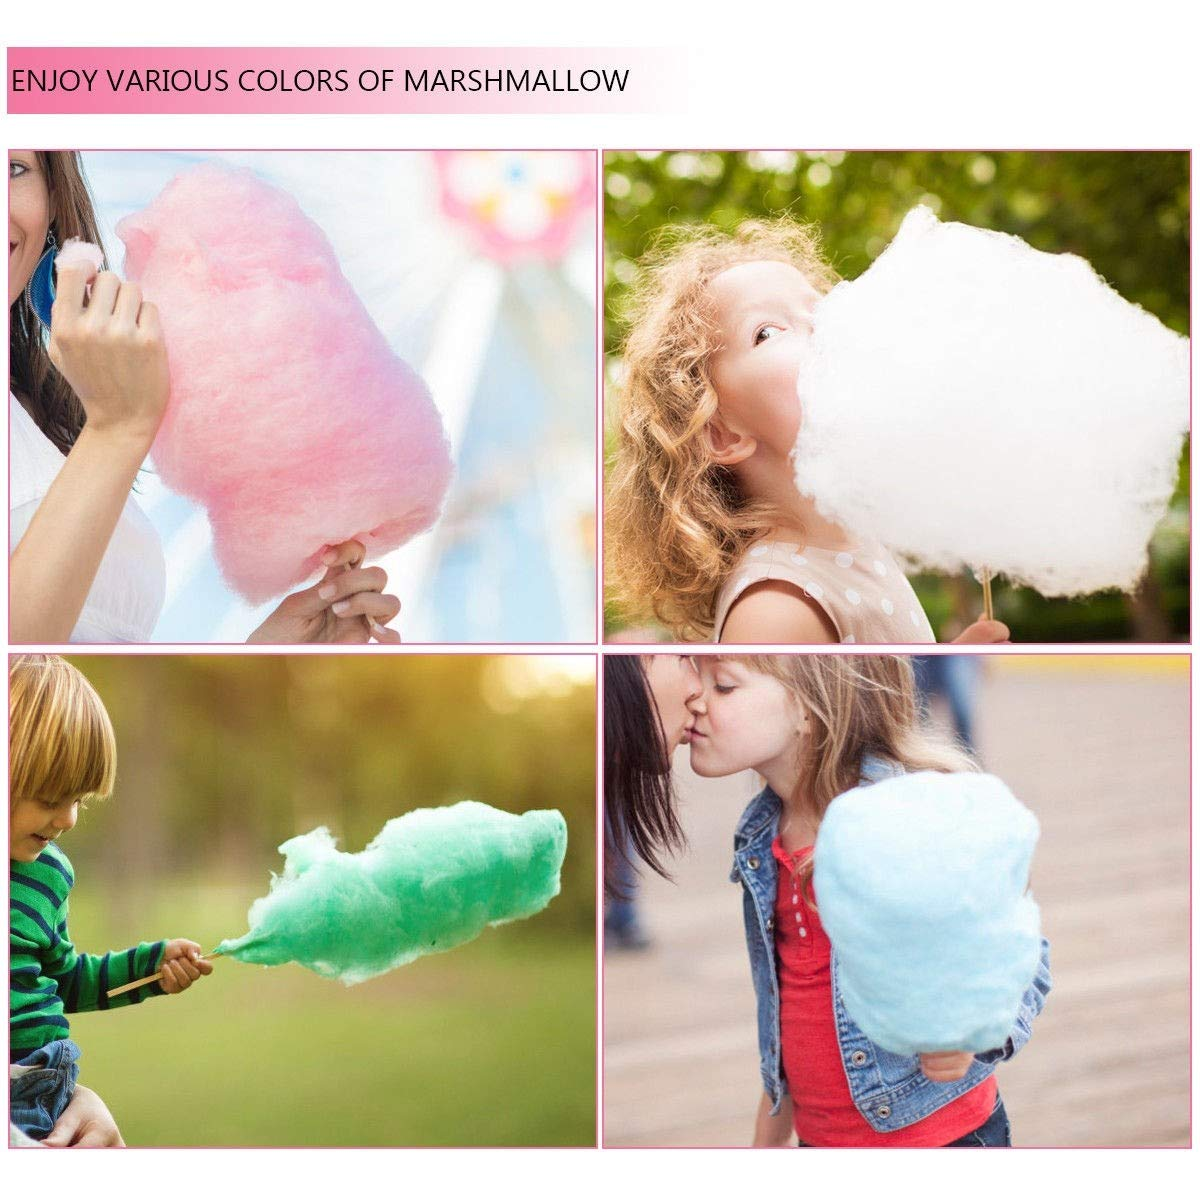 Cotton Candy Machine, Pink Electric Cotton Candy Machine by MD Group (Image #4)